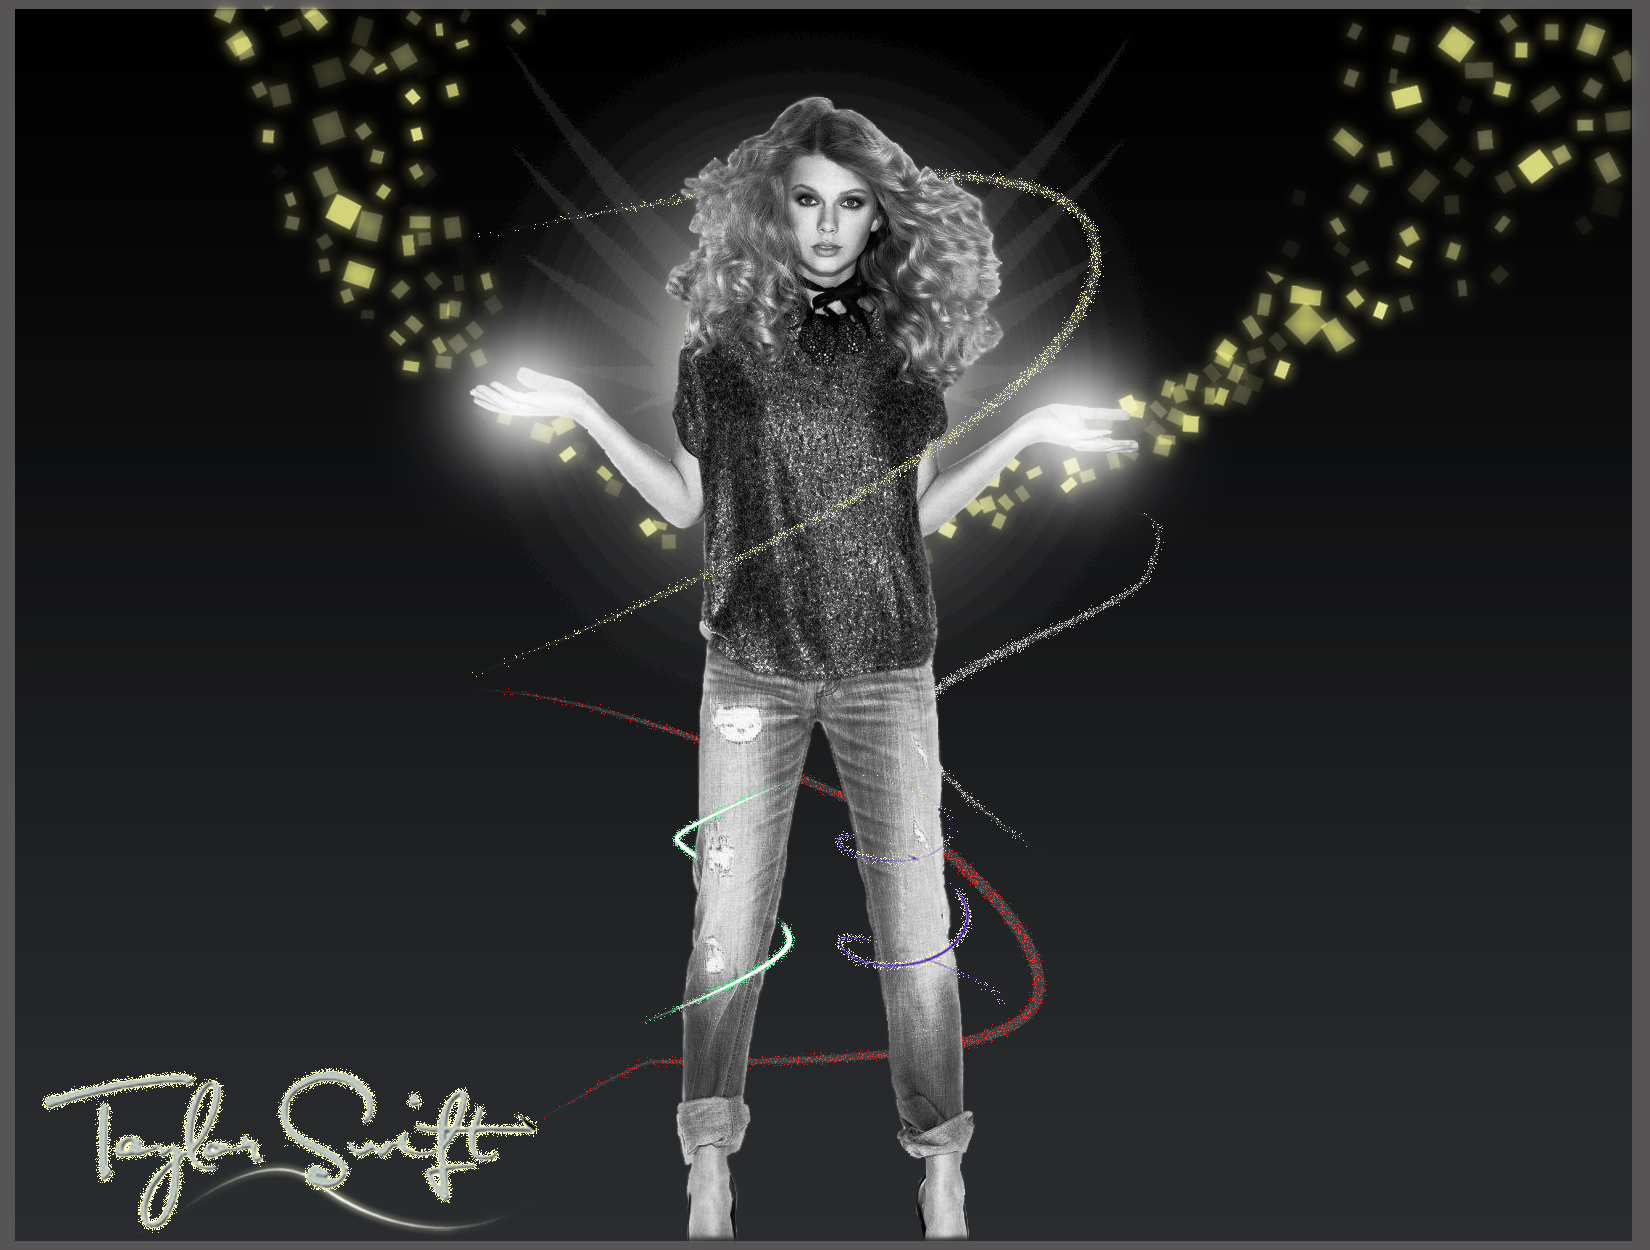 Taylor Swift Abstract Light Effects By Ayeshmantha On Deviantart